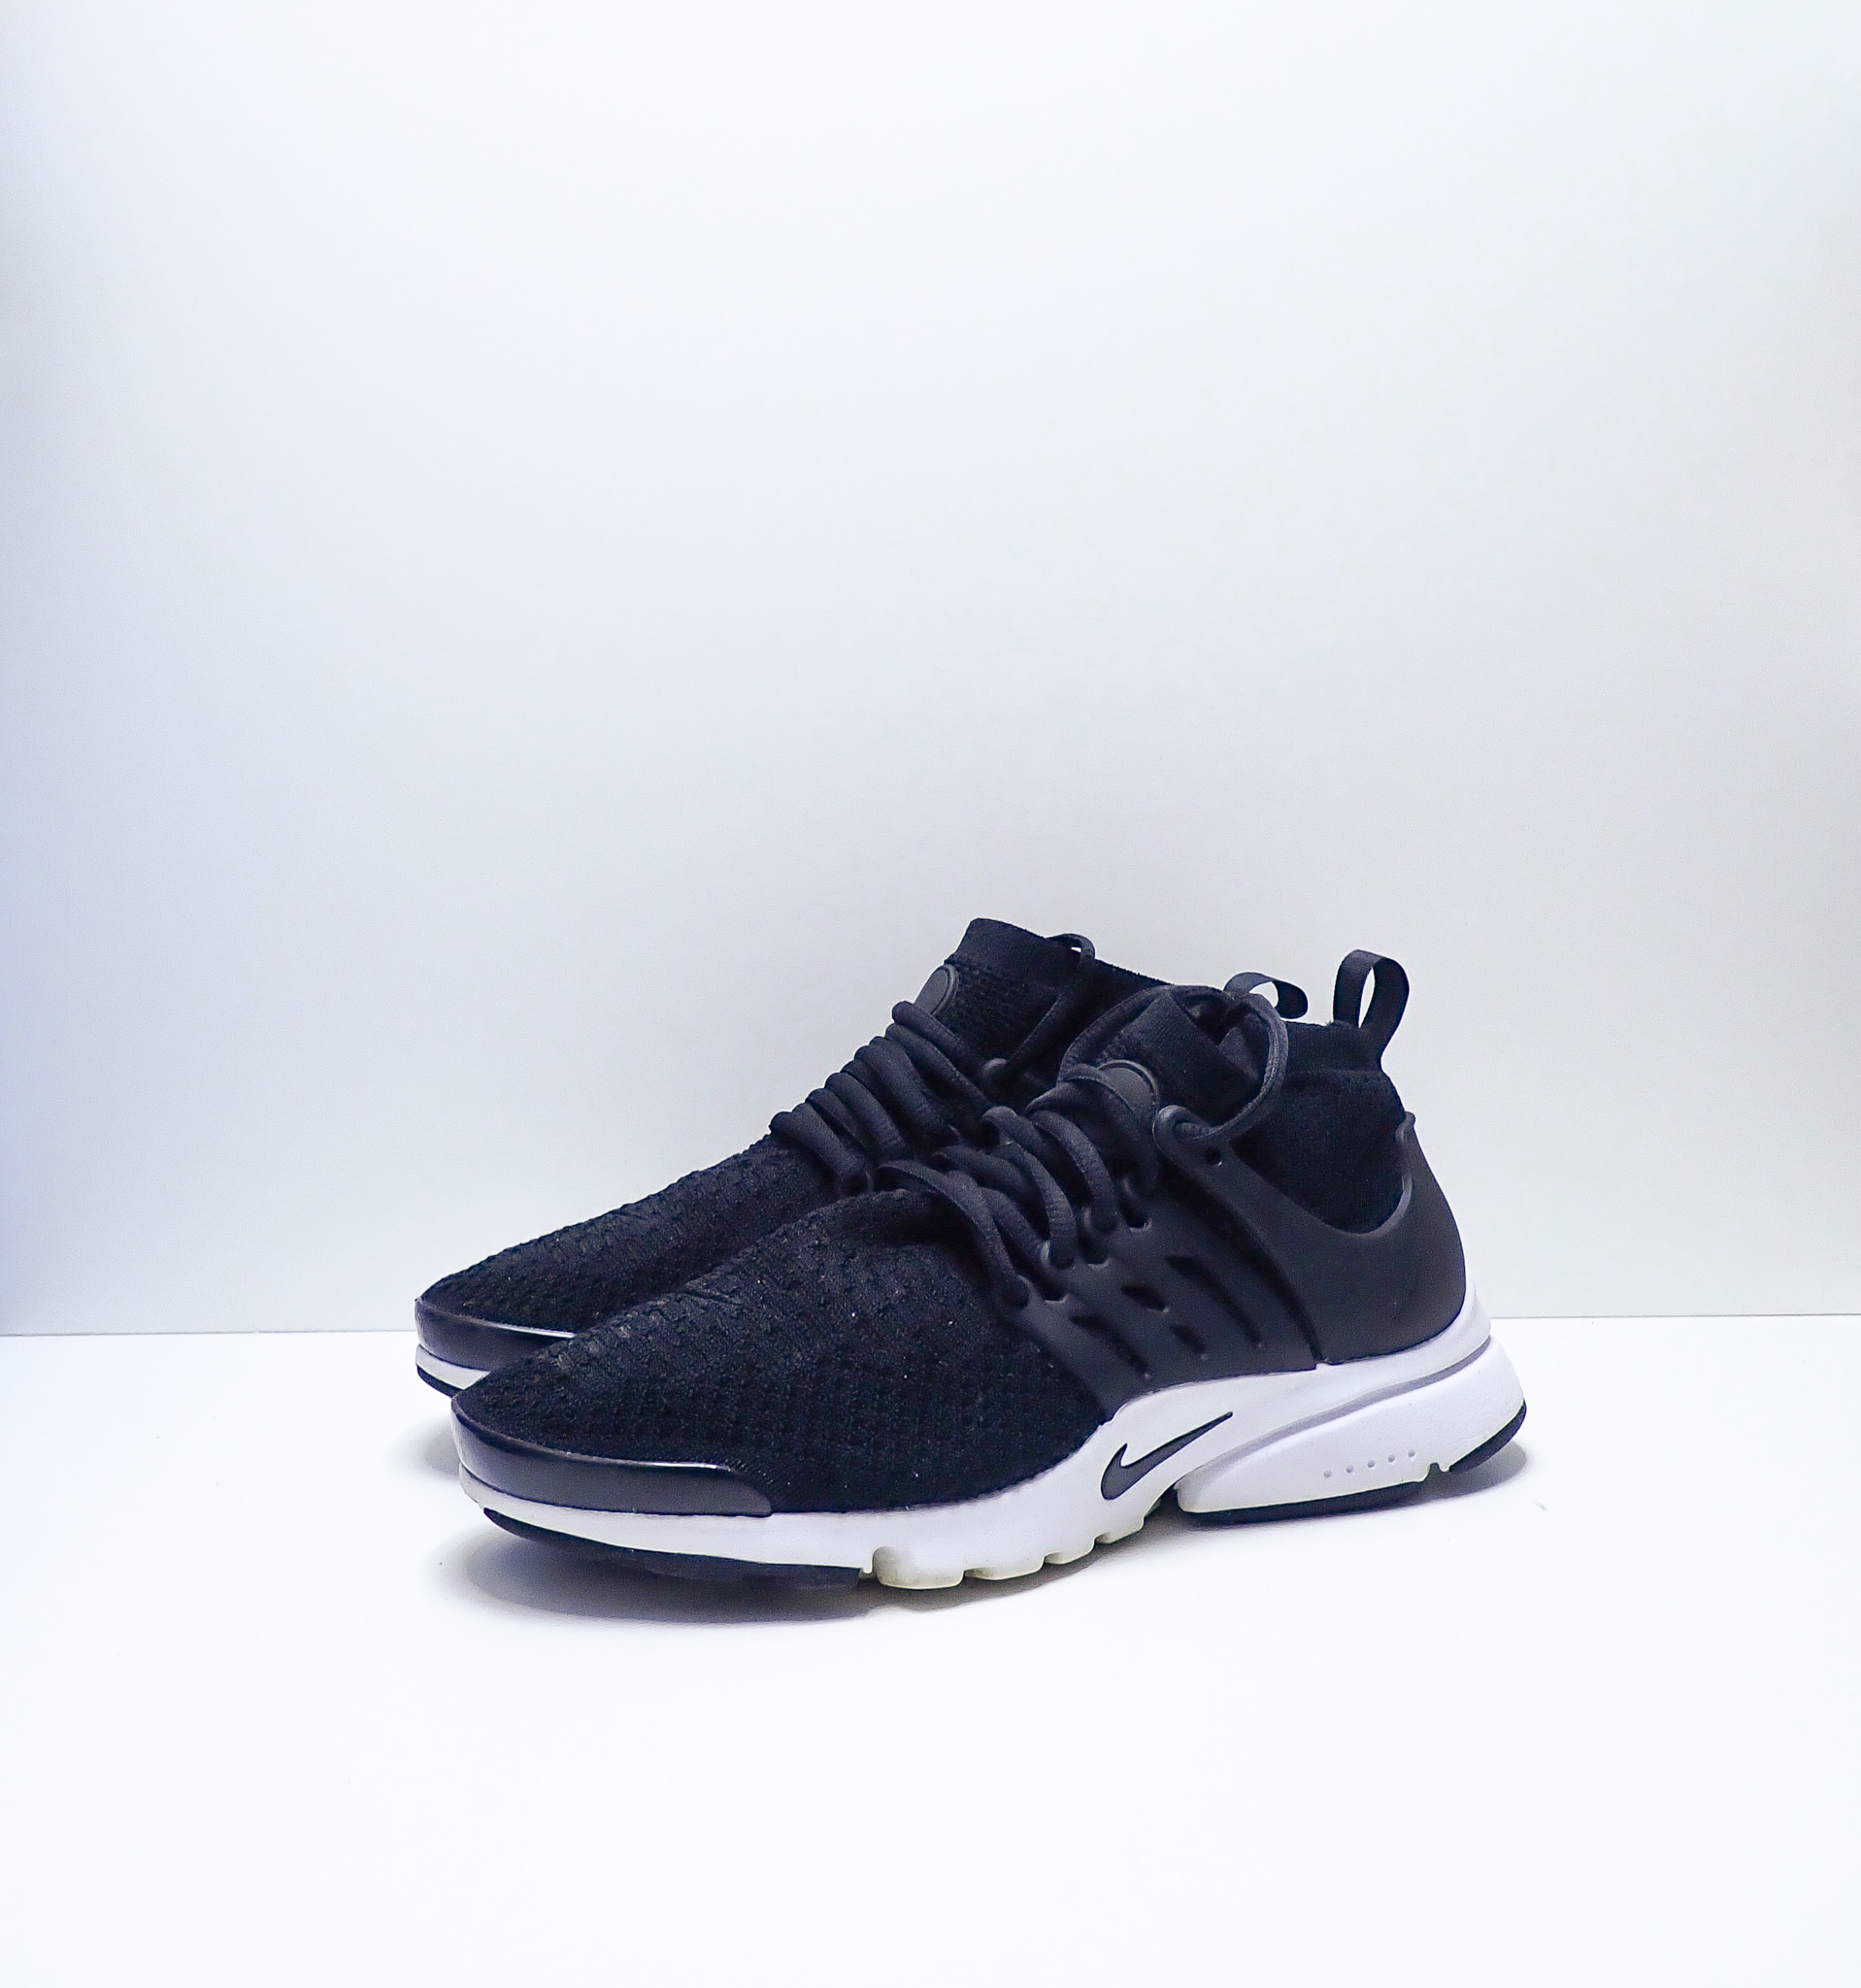 Nike Air Presto Ultra Flyknit Black (W)